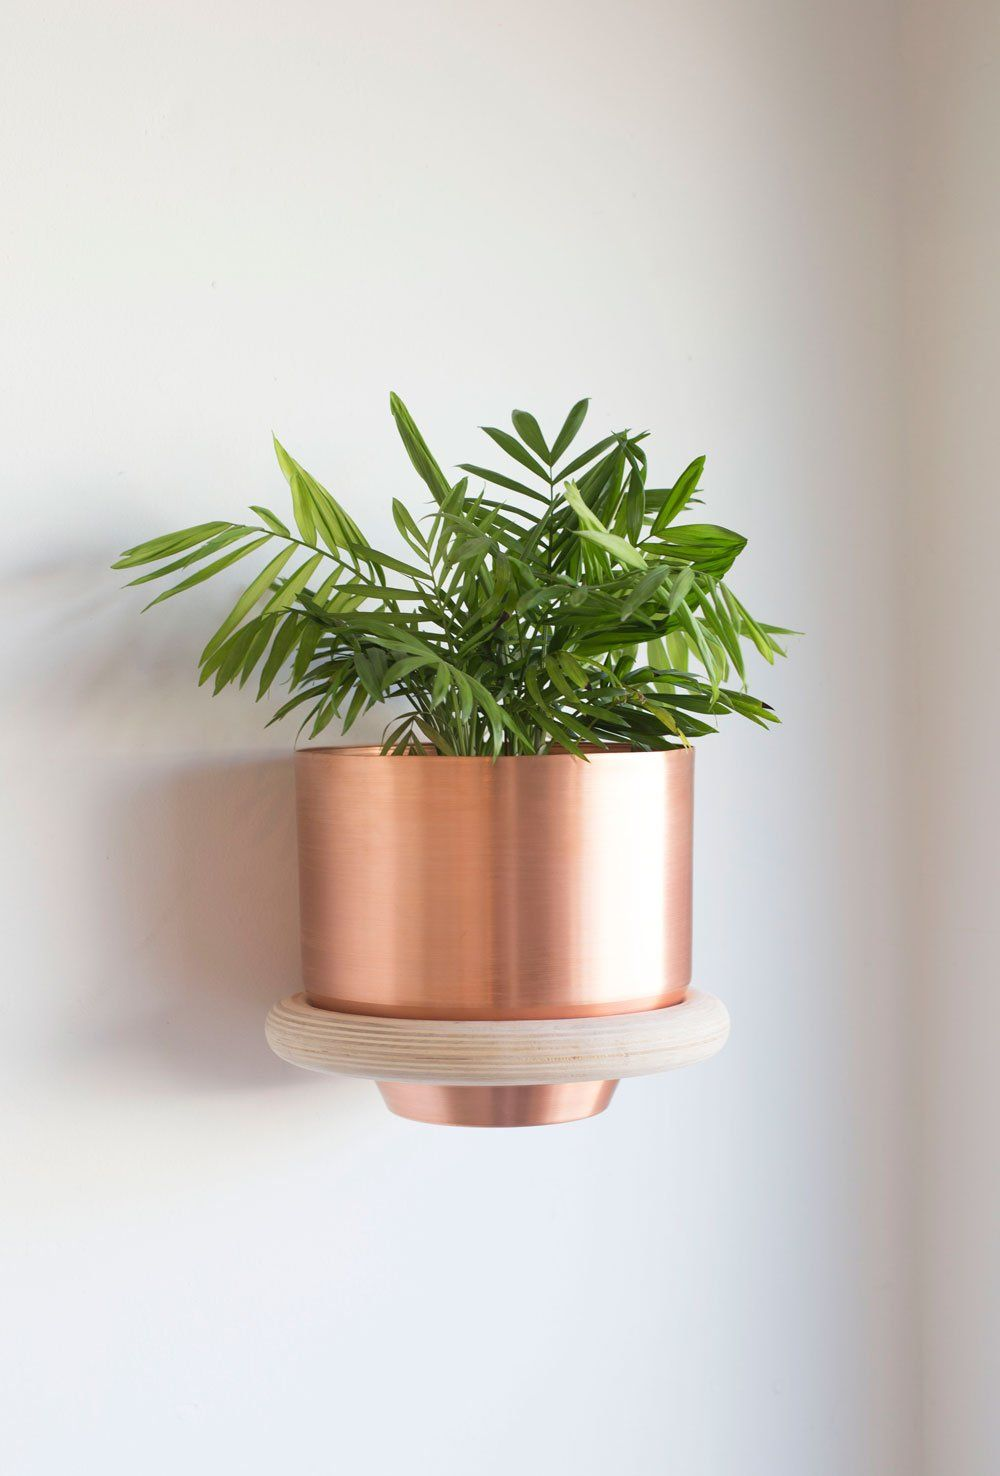 Ring Wall Mount Wall Mounted Planters Wall Mounted Plant Holder